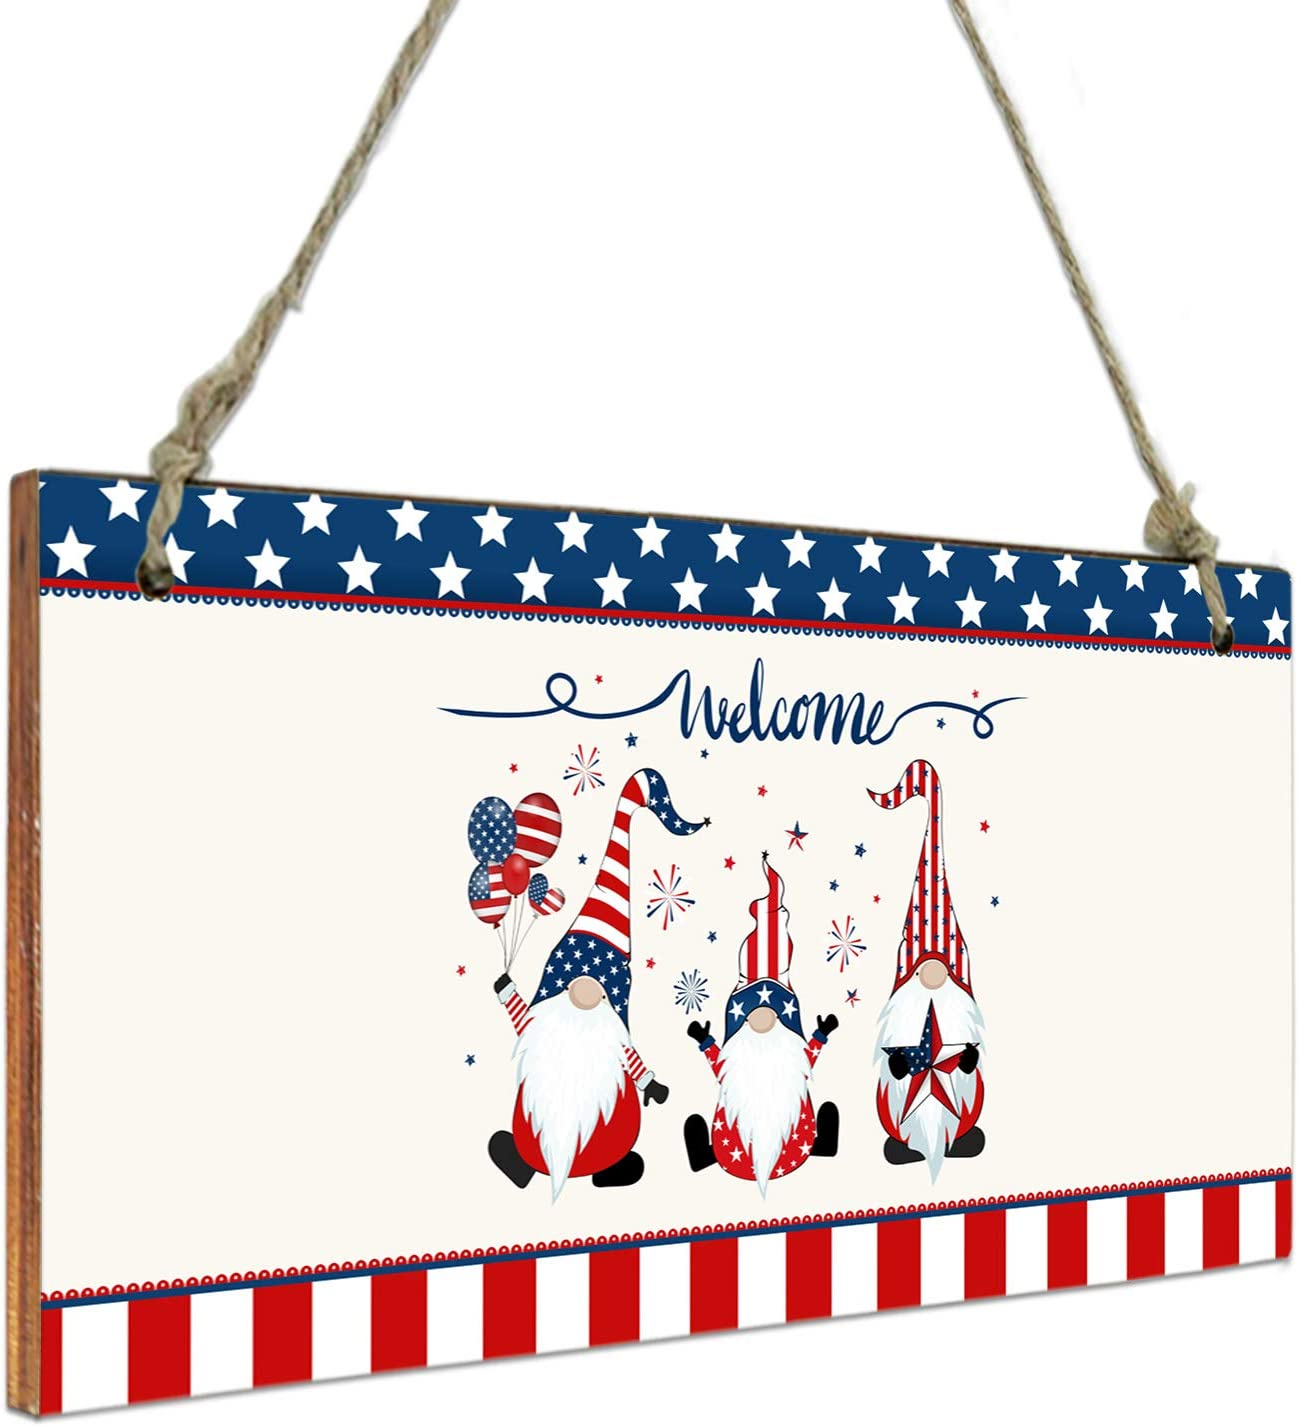 4th of July Hanging Wall Decor Wooden Sign-Independence Day Welcome Gnomes Balloons Pentagram Stripes Patriot,Welcome Door Sign Wood Plaque for Home Living Room Bedroom Bathroom Farmhouse Wall Decor